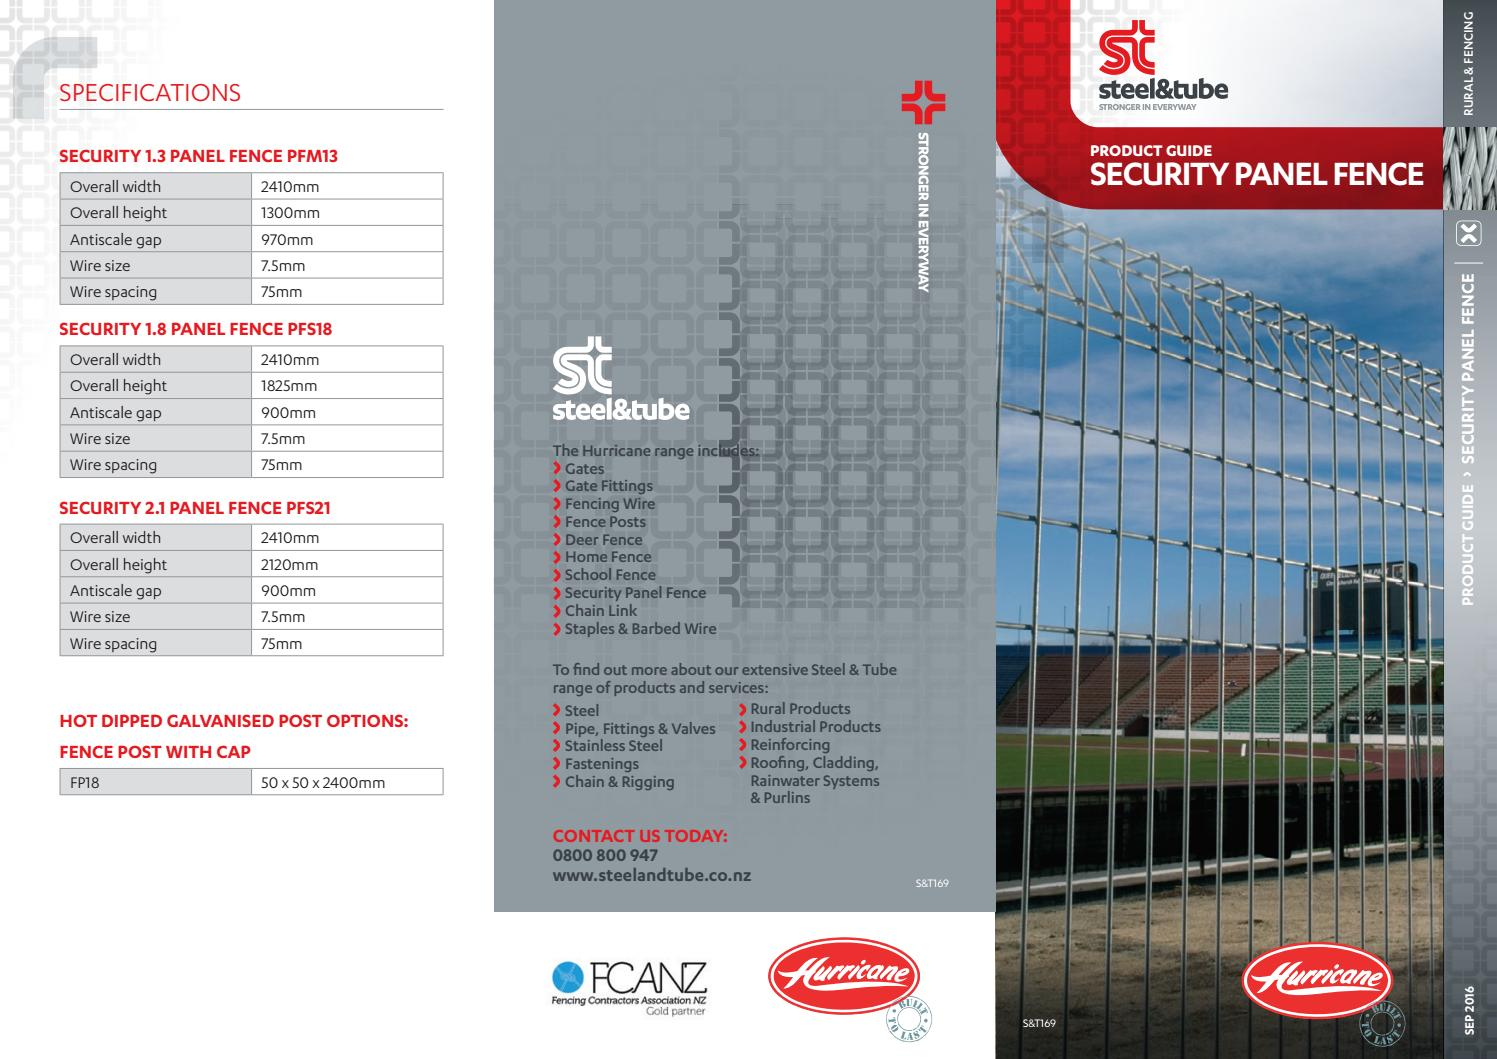 Hurricane – Security Fence Product Guide by Steel & Tube - issuu